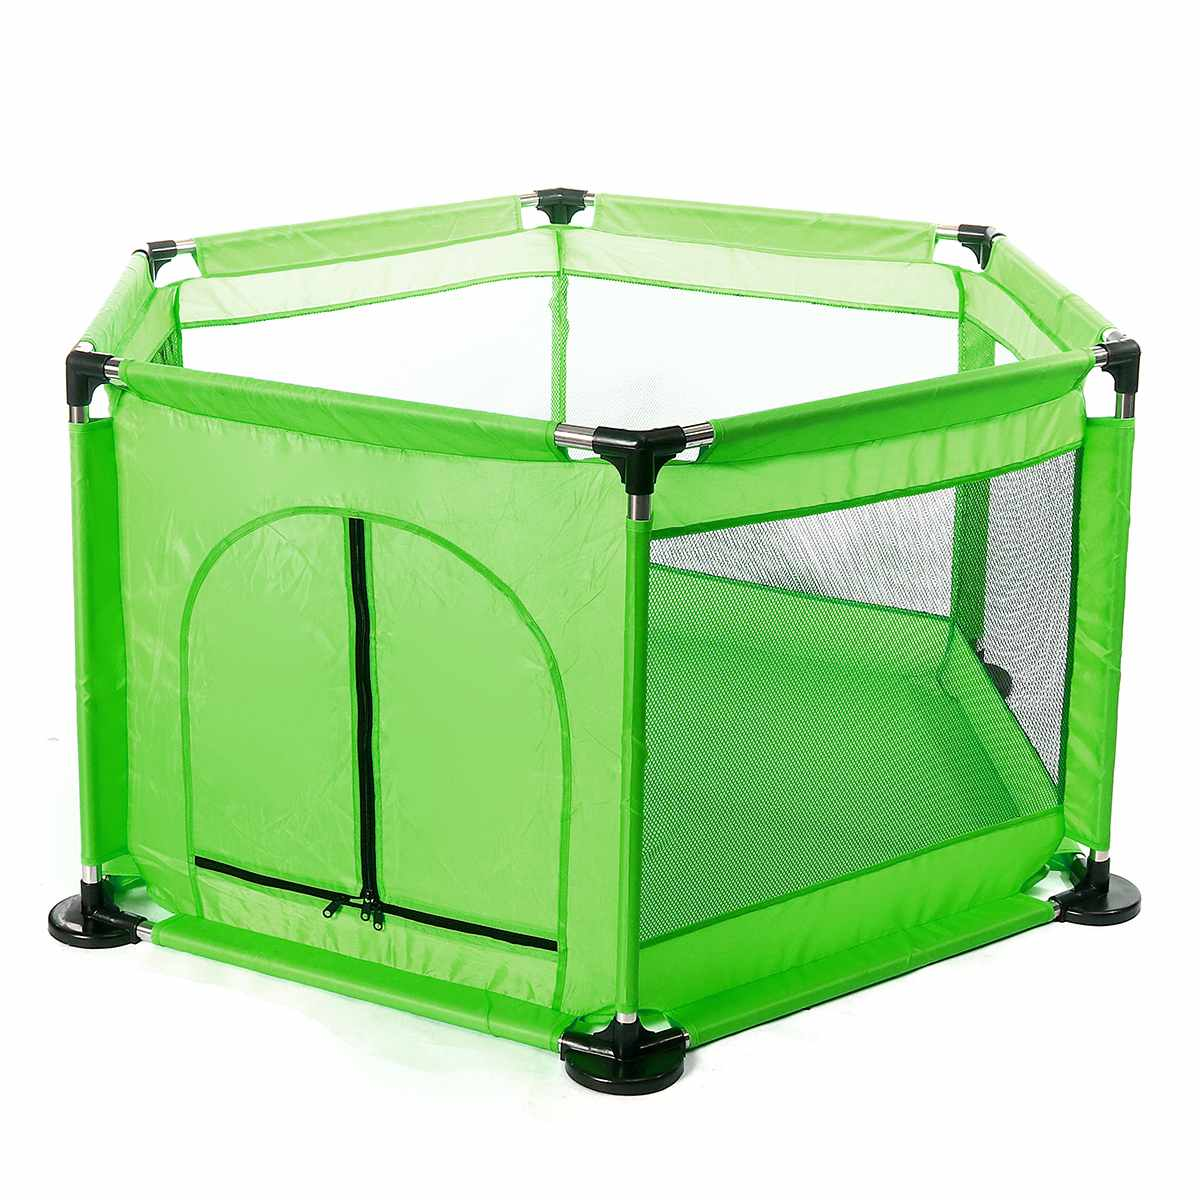 Large 130cm Children Baby Playpen Playhouse Assembly Indoor Outdoor Toddler Game Ball Pool Tent Playground Baby Safety Fence